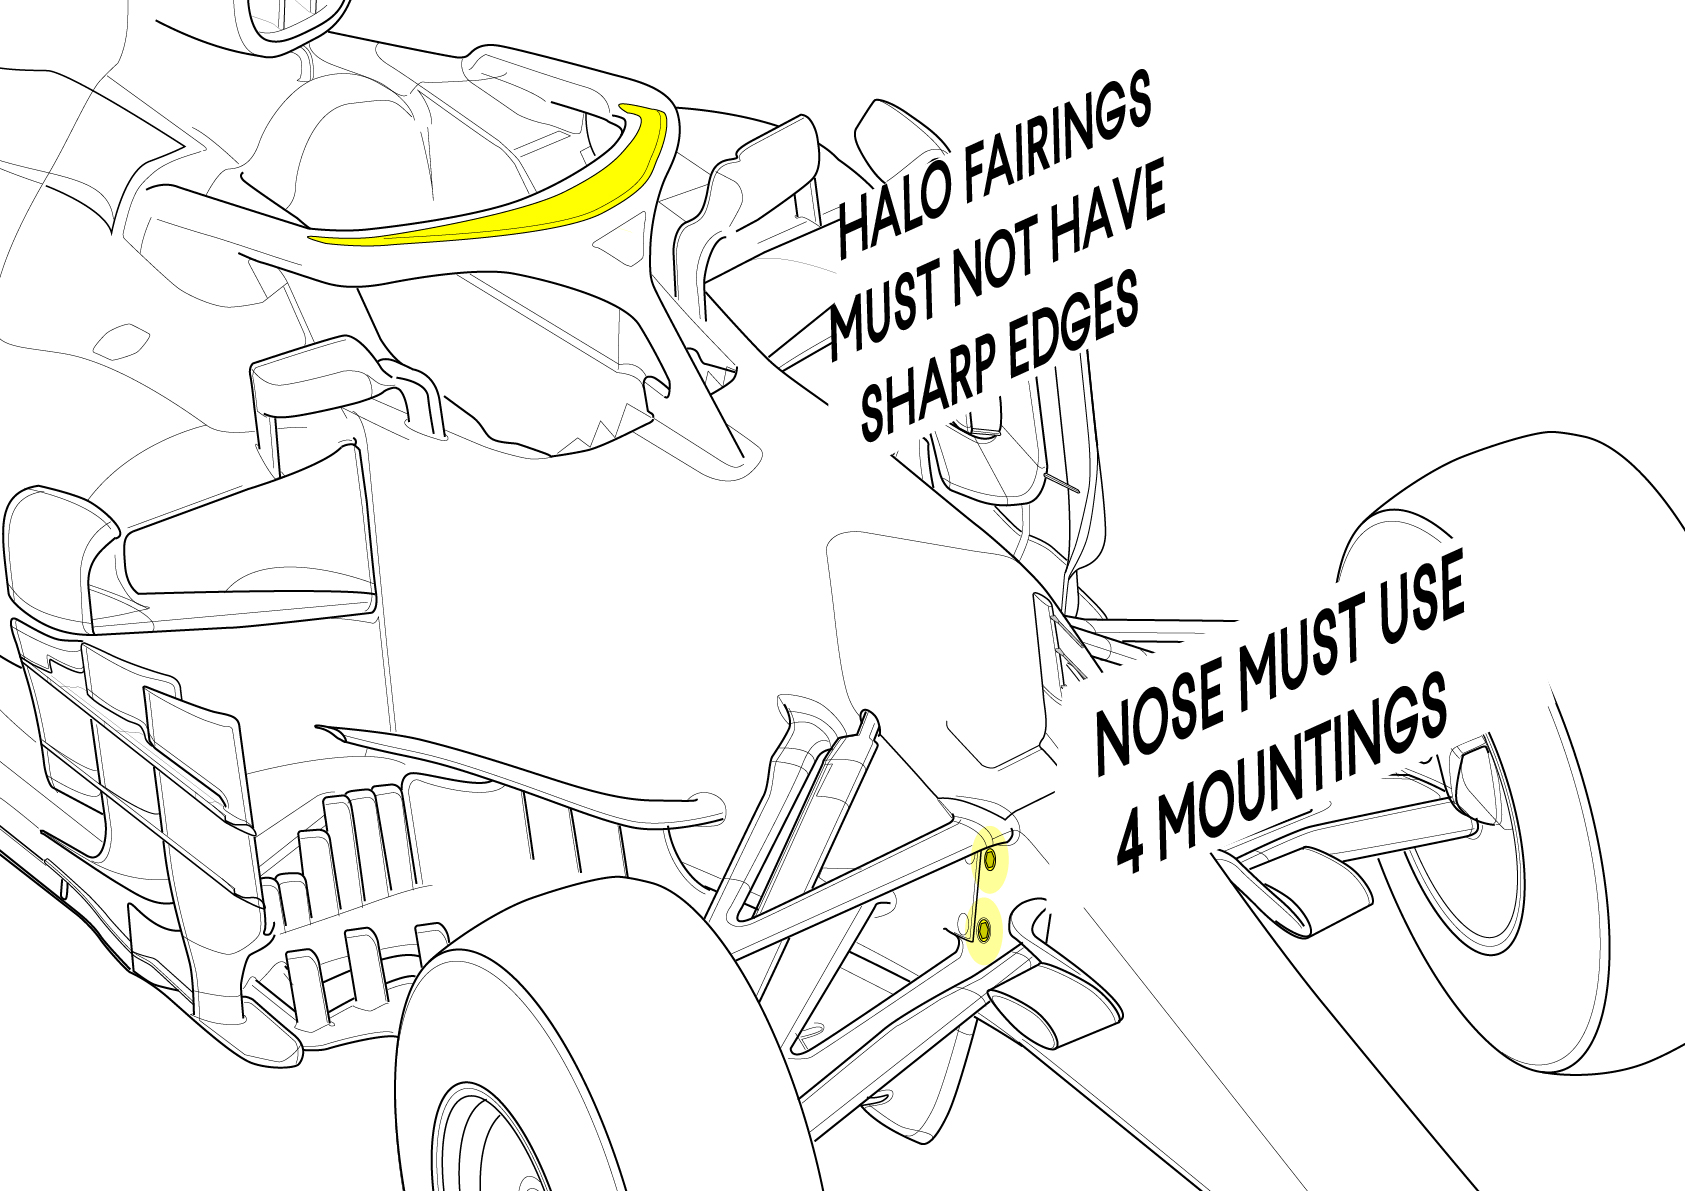 F1 2019 Regulations – halo and nose mounting.